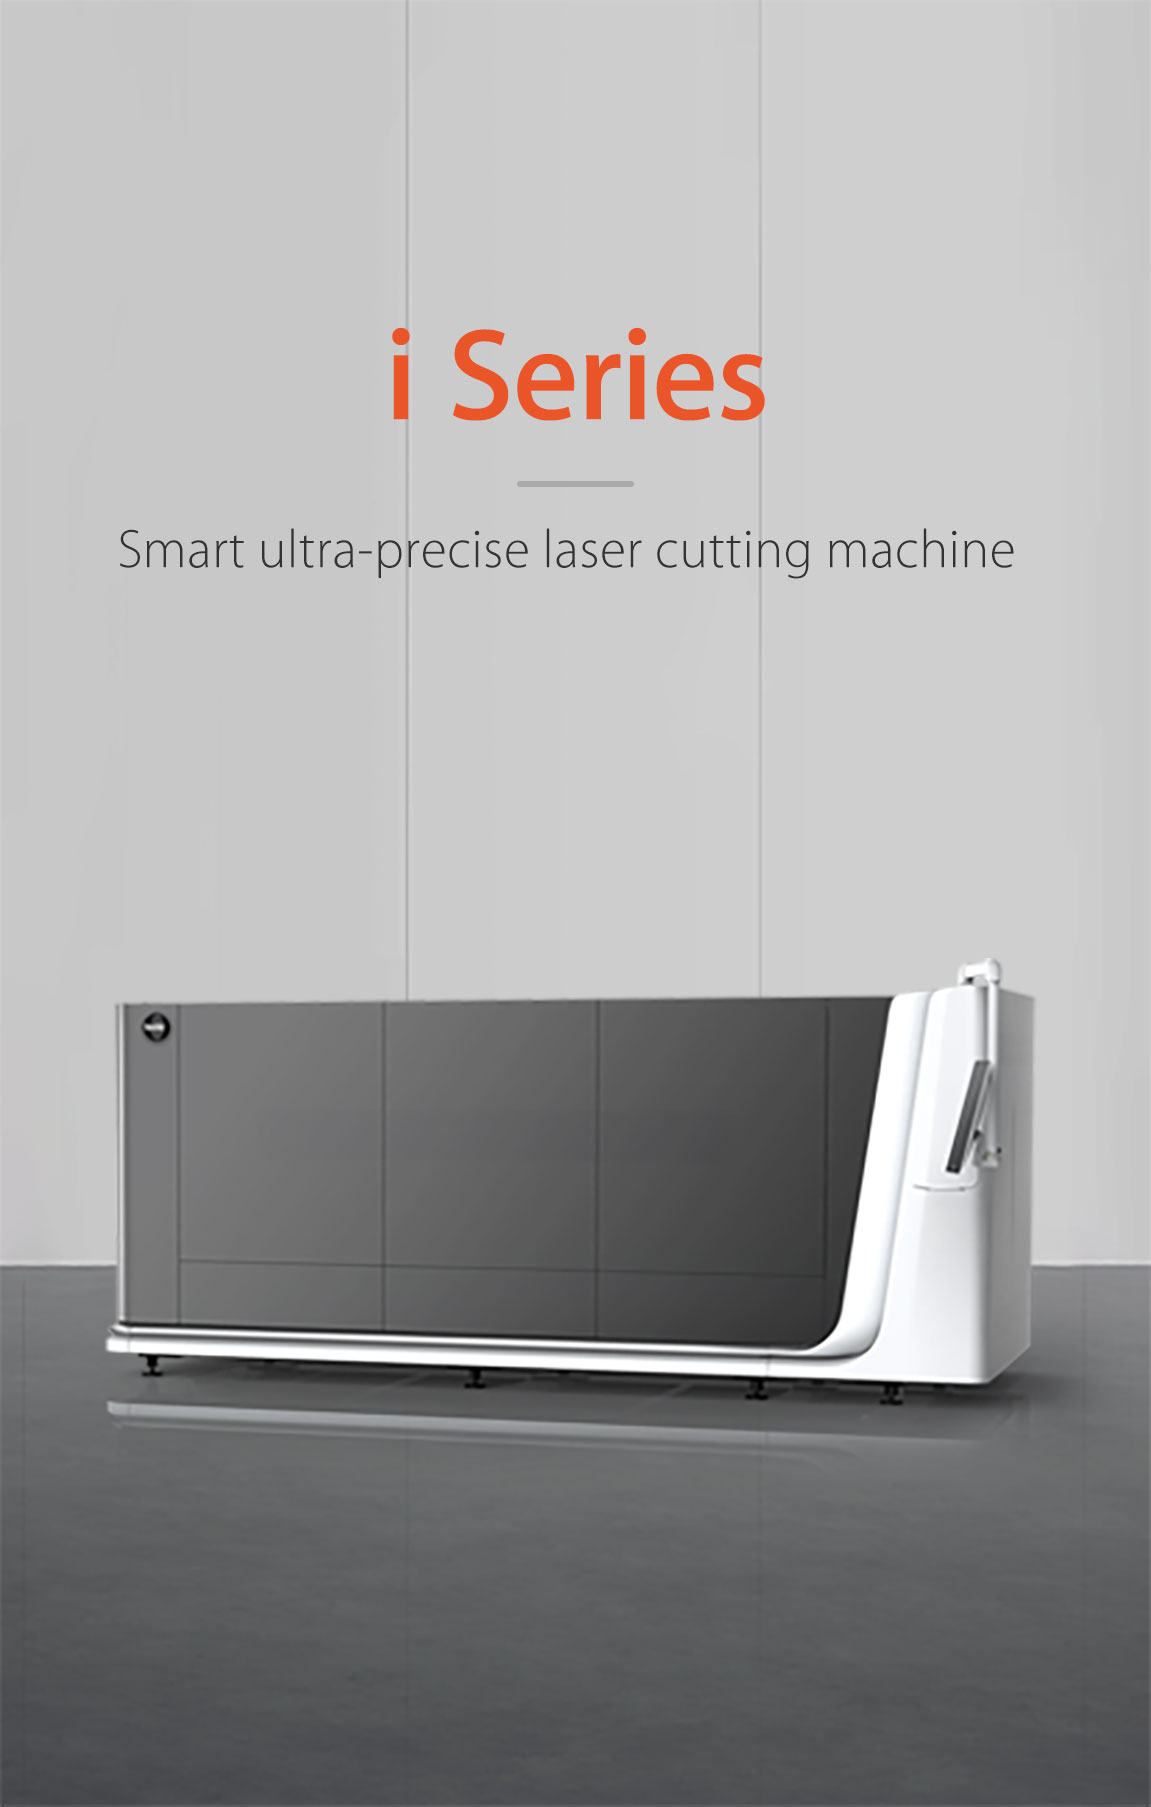 High precision laser cutting machine i Series